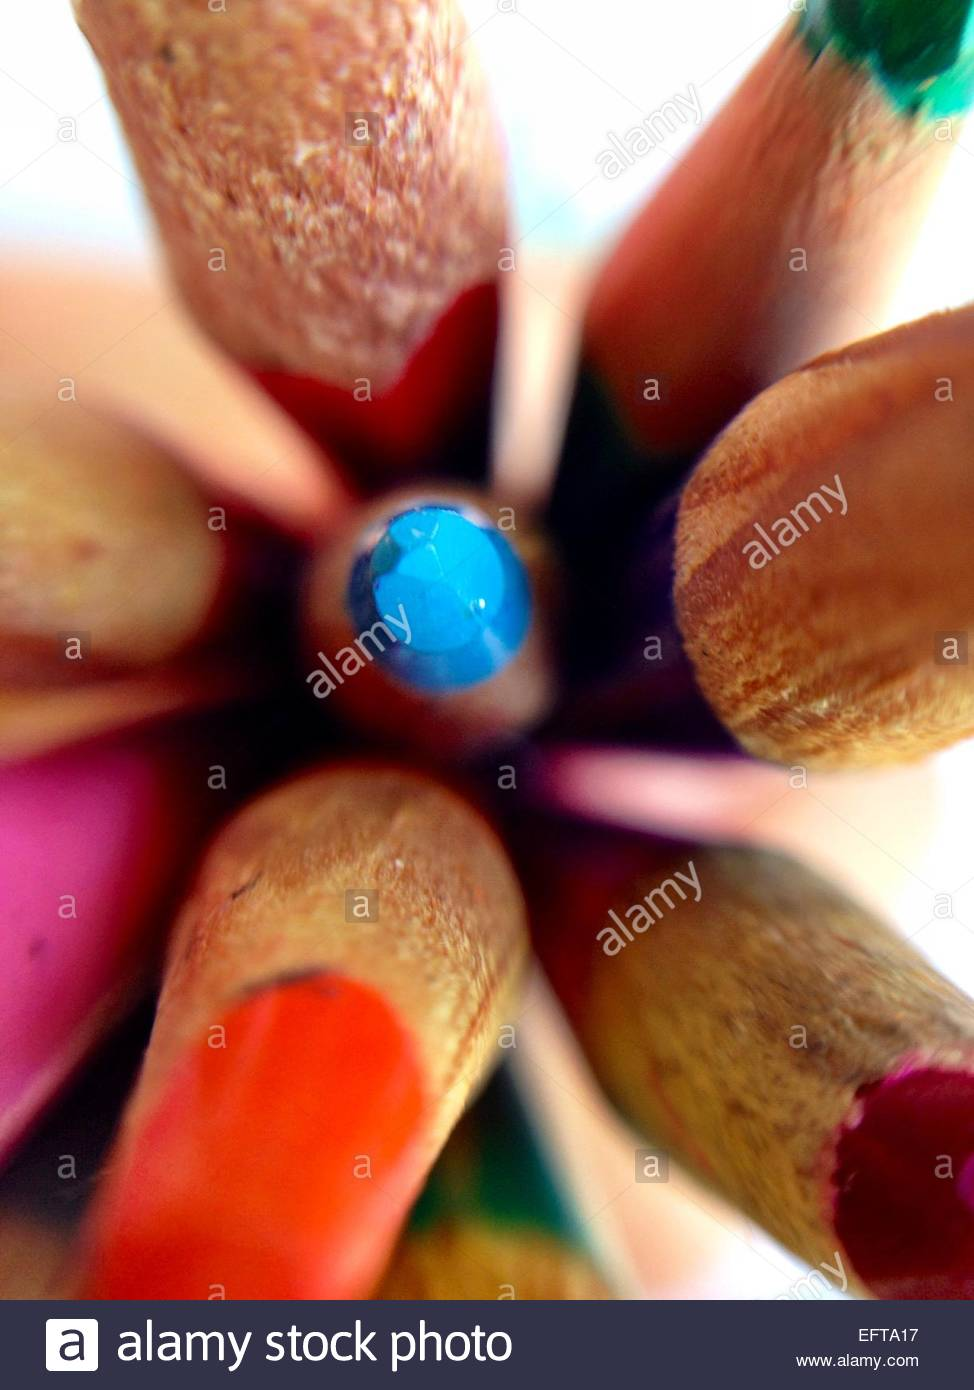 Close up of colored pencil tip - Stock Image